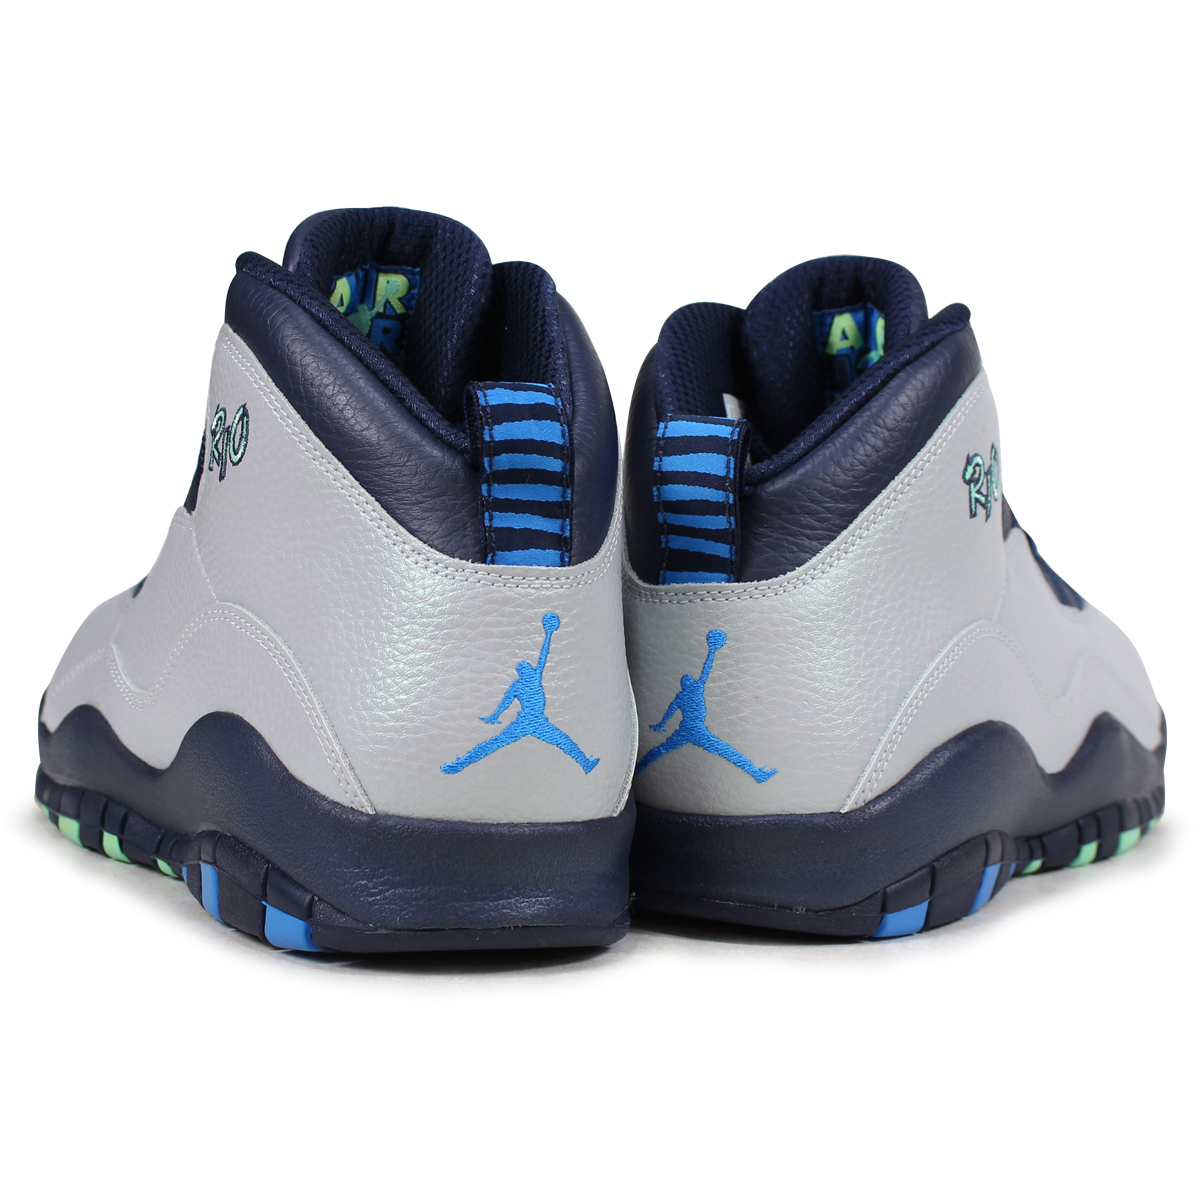 detailed pictures 51991 43dca  SOLD OUT  NIKE Nike Air Jordan sneakers AIR JORDAN 10 RETRO RIO Air Jordan  10 retro 310805 - 019 grey mens